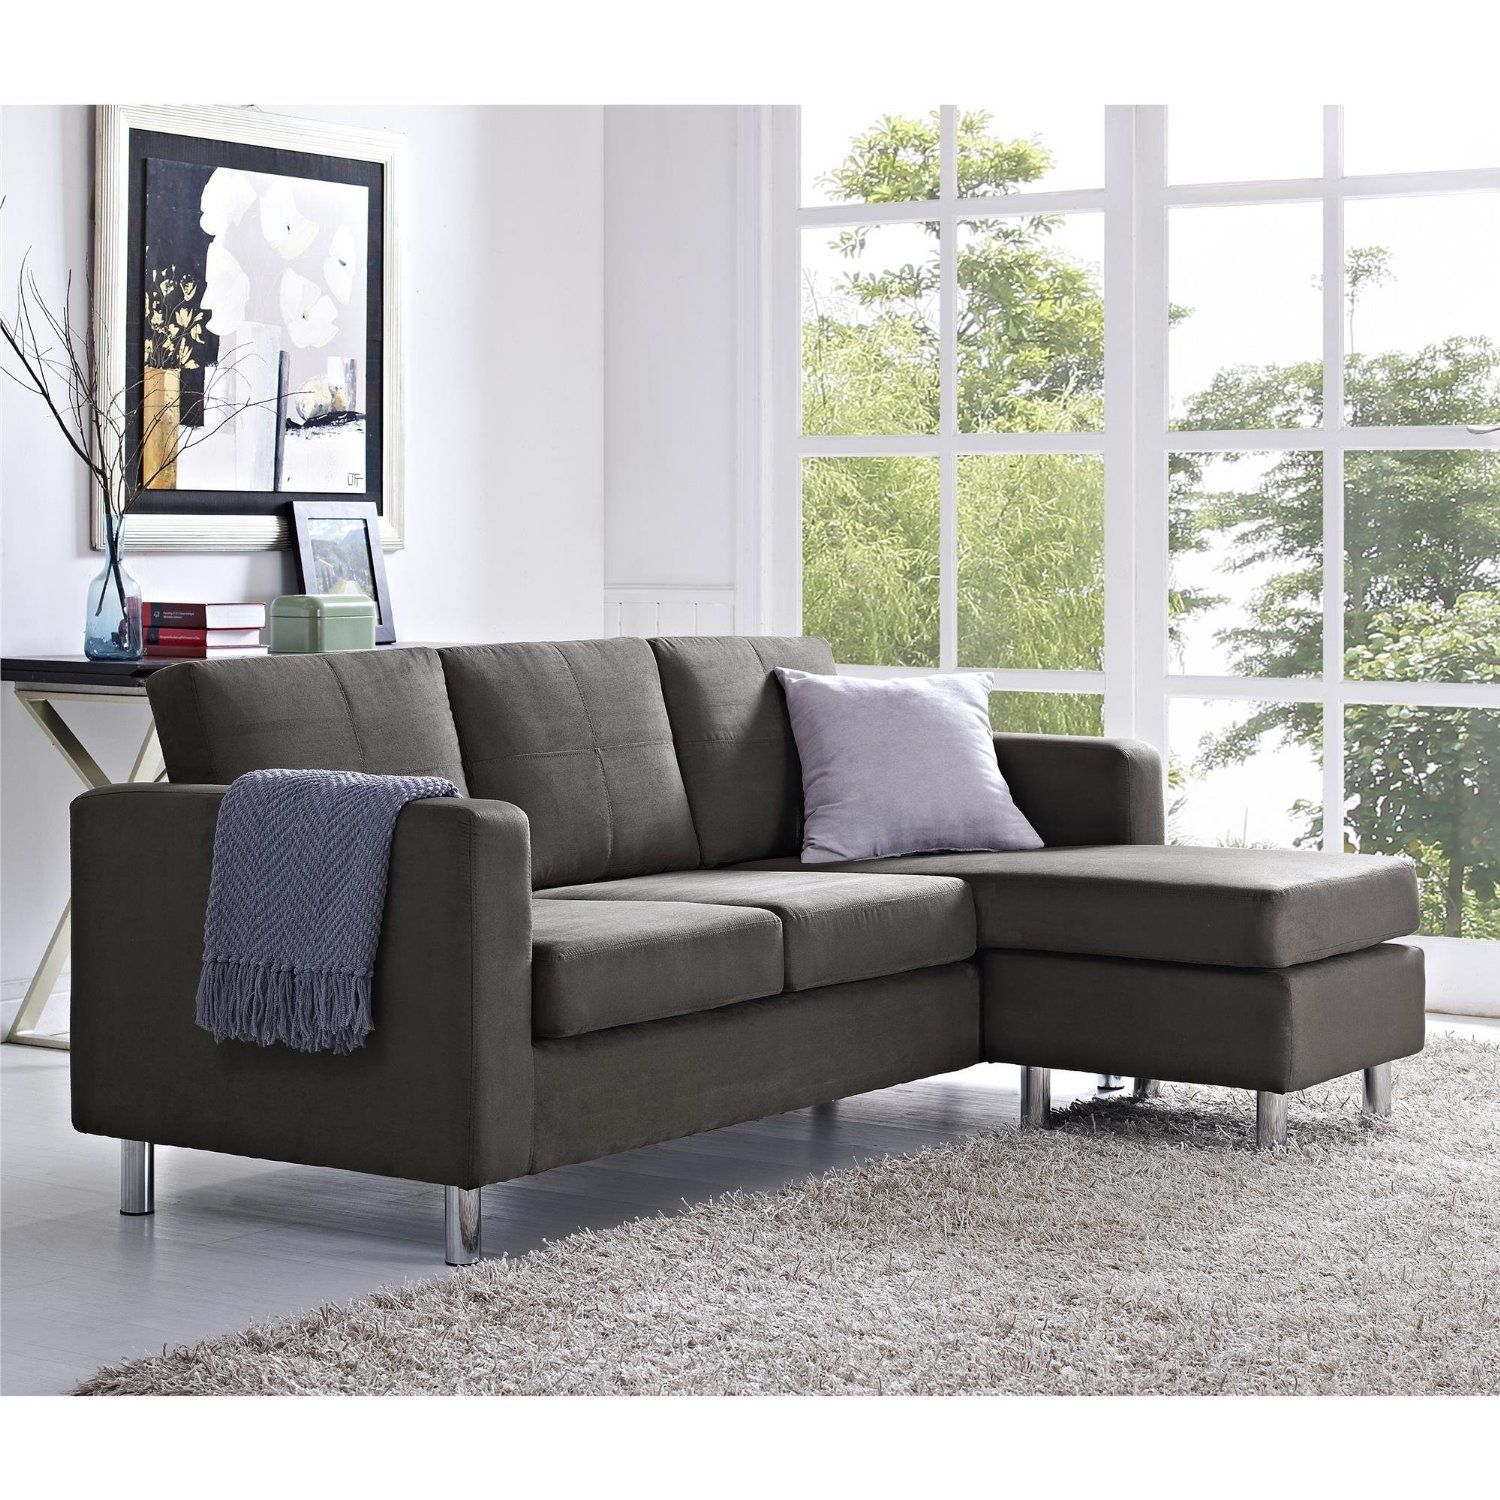 Sectional Sofa Gray Sofas For Small Spaces Small Sectional Sofa Small Space Sectional Sofa